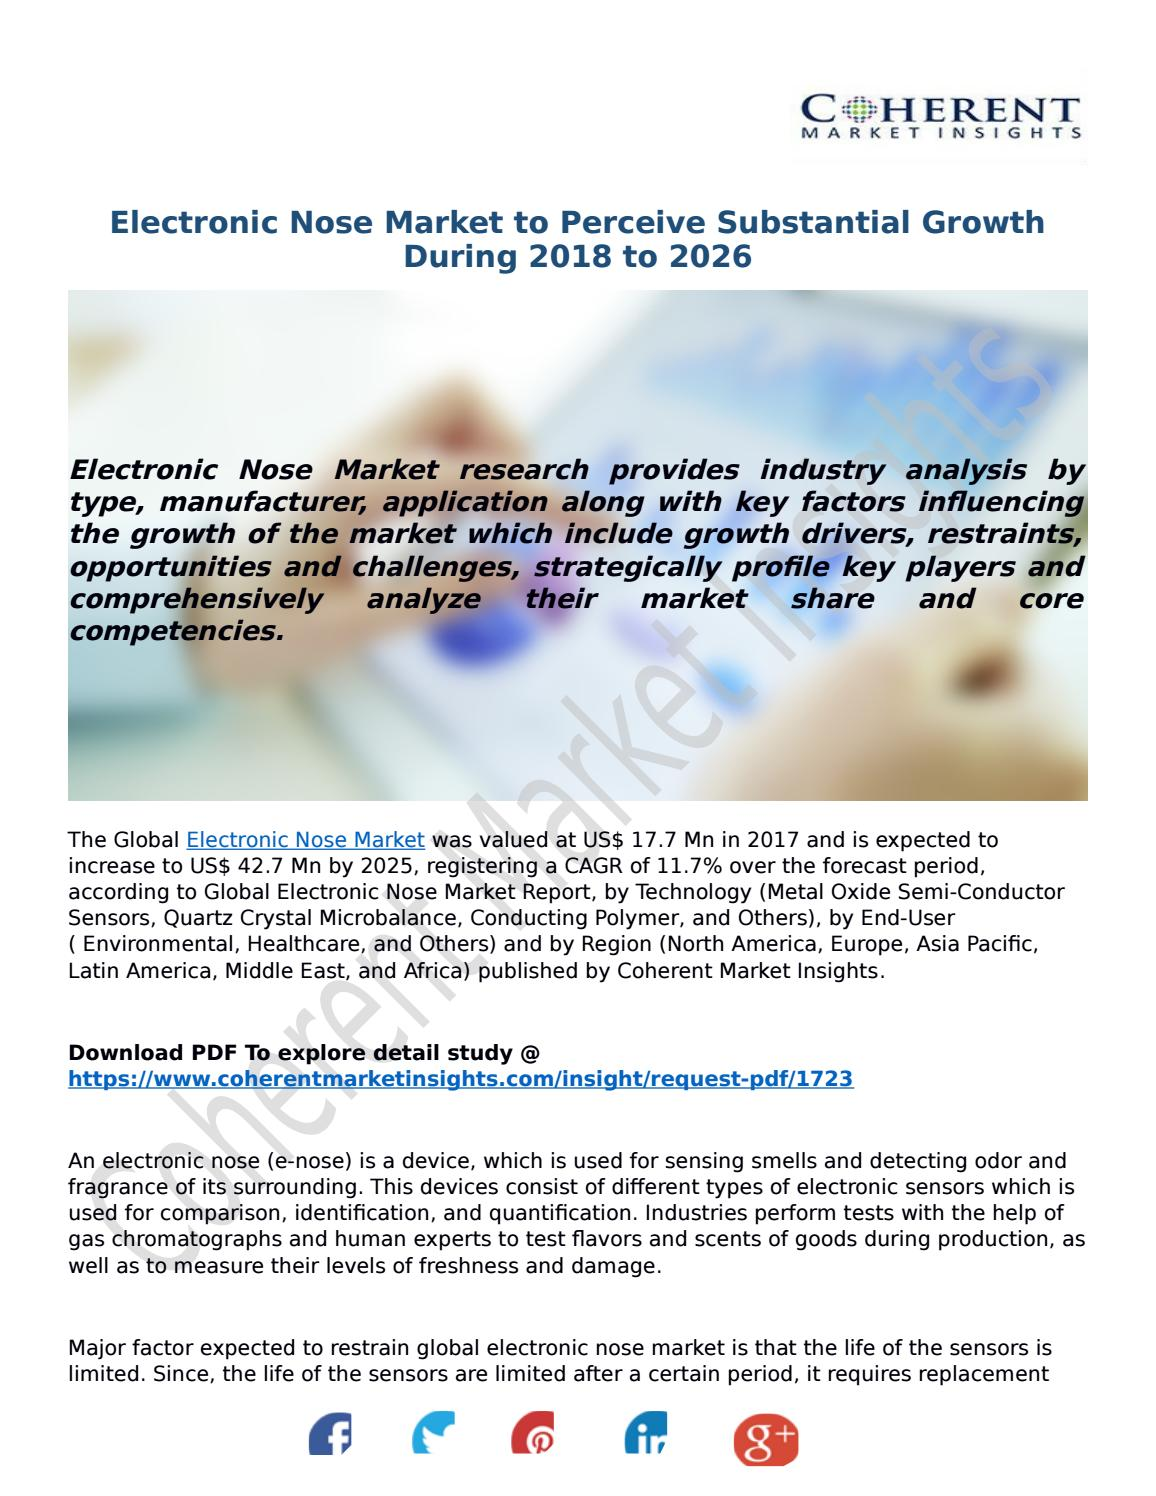 Electronic Nose Market to Perceive Substantial Growth During 2018 to 2026